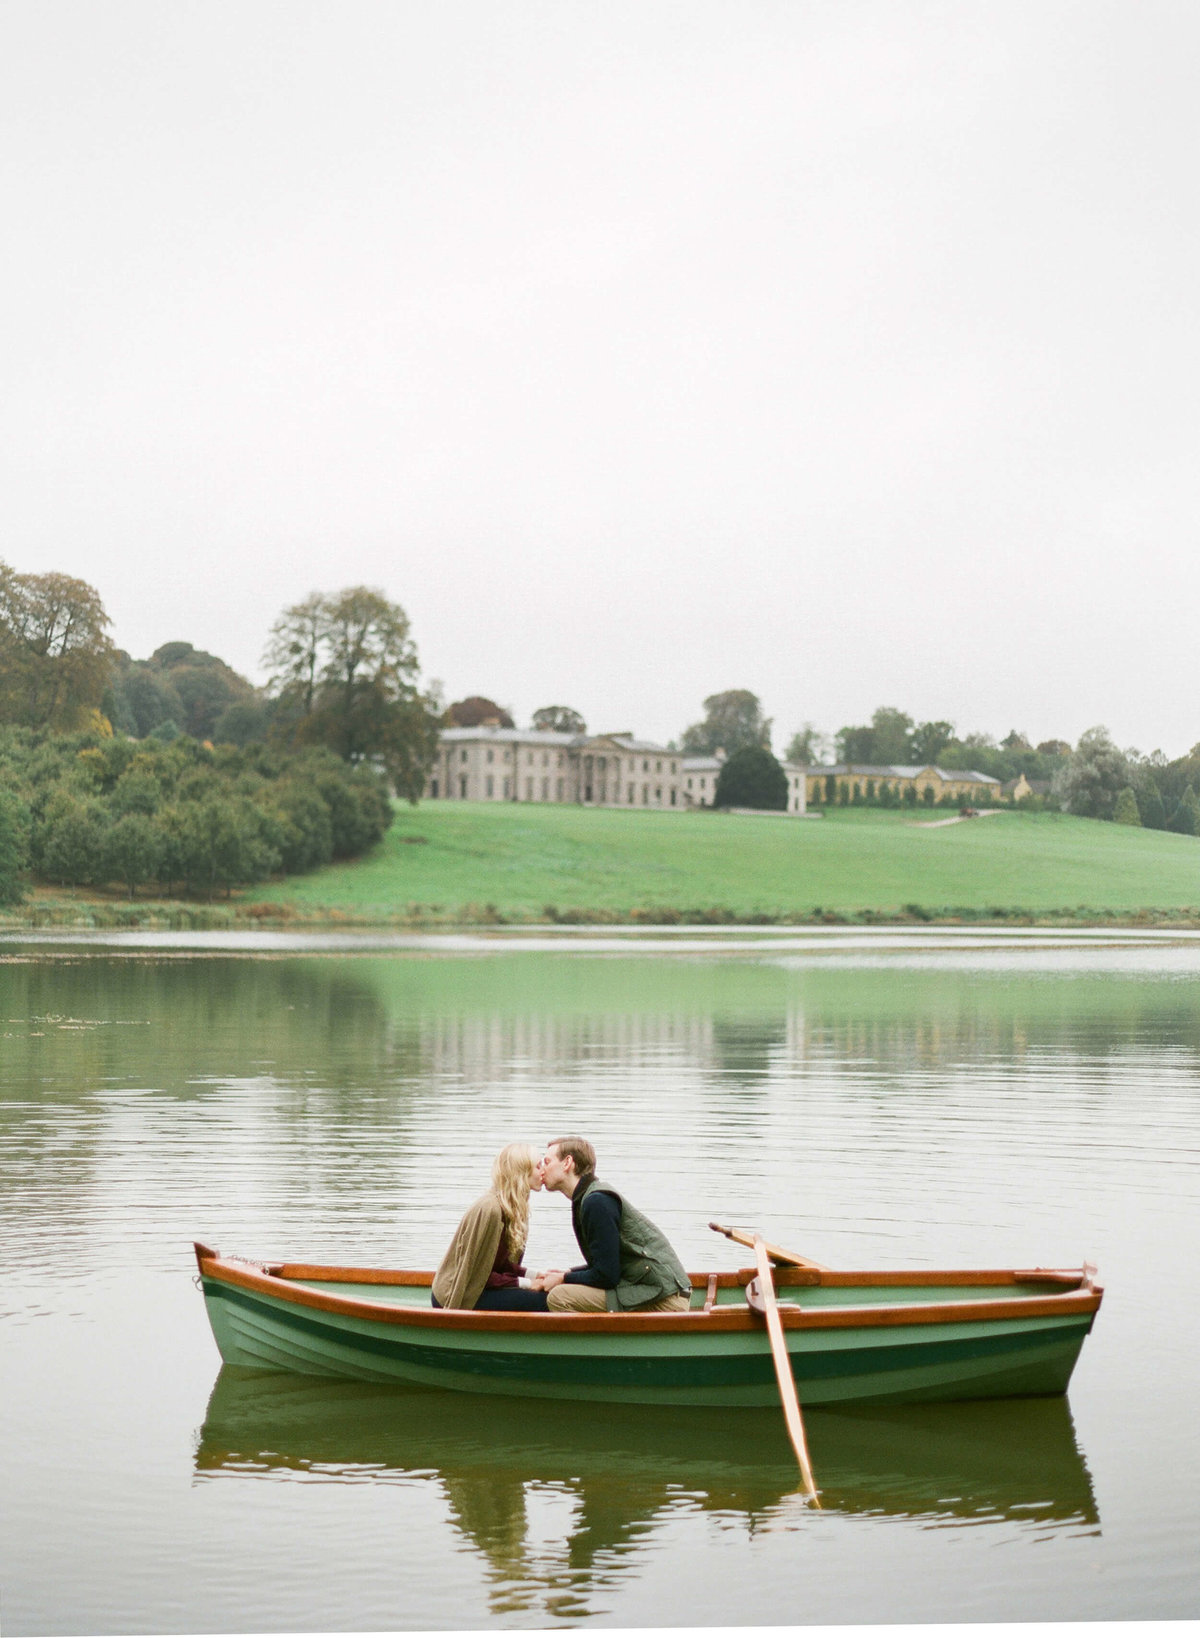 6-KTMerry-destination-weddings-Ireland-Ballyfin-couple-boating